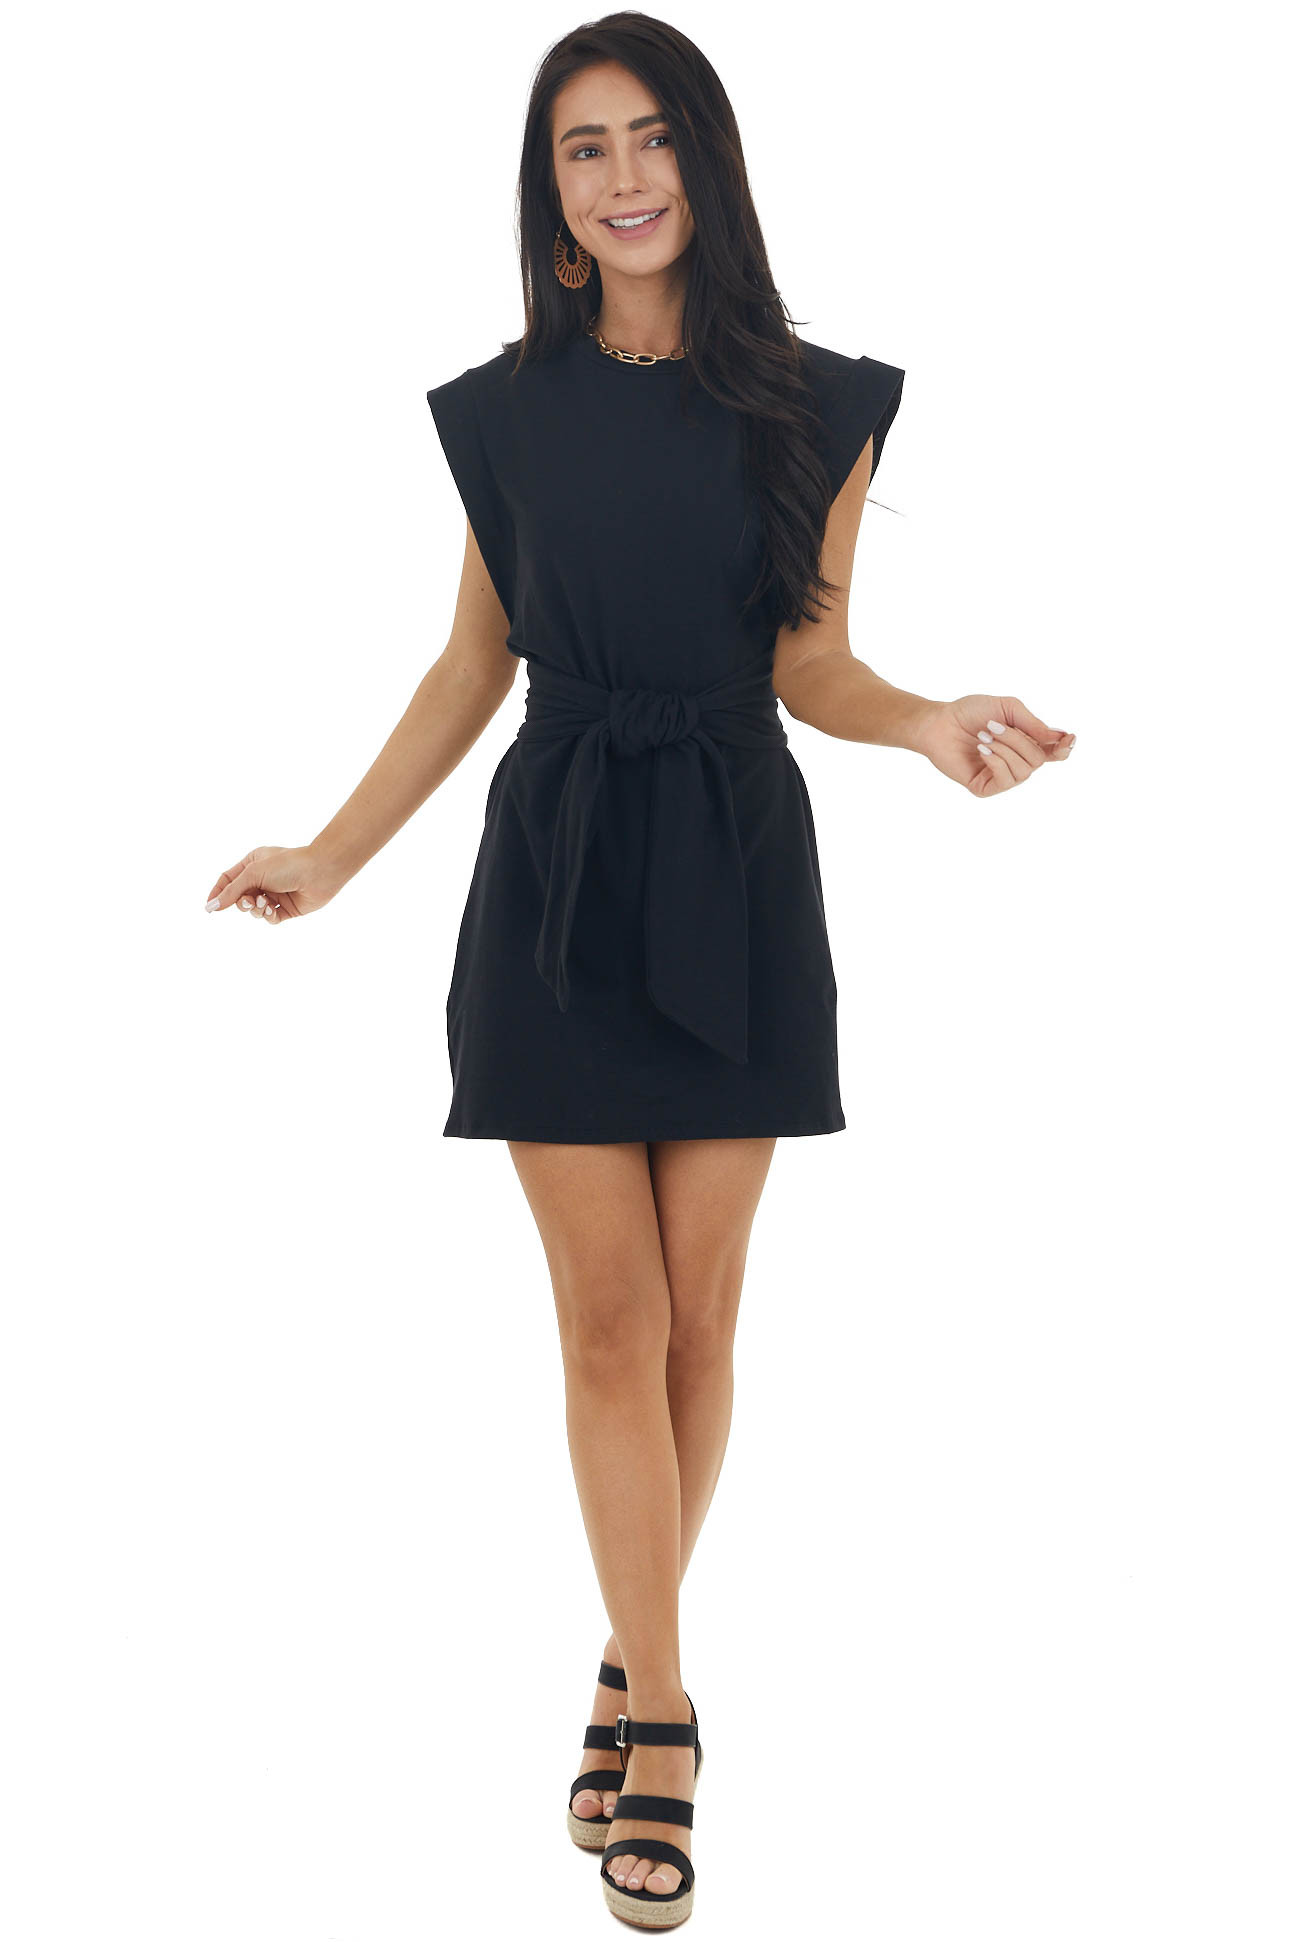 Black Cap Sleeves Short Dress with Front Tie Detail